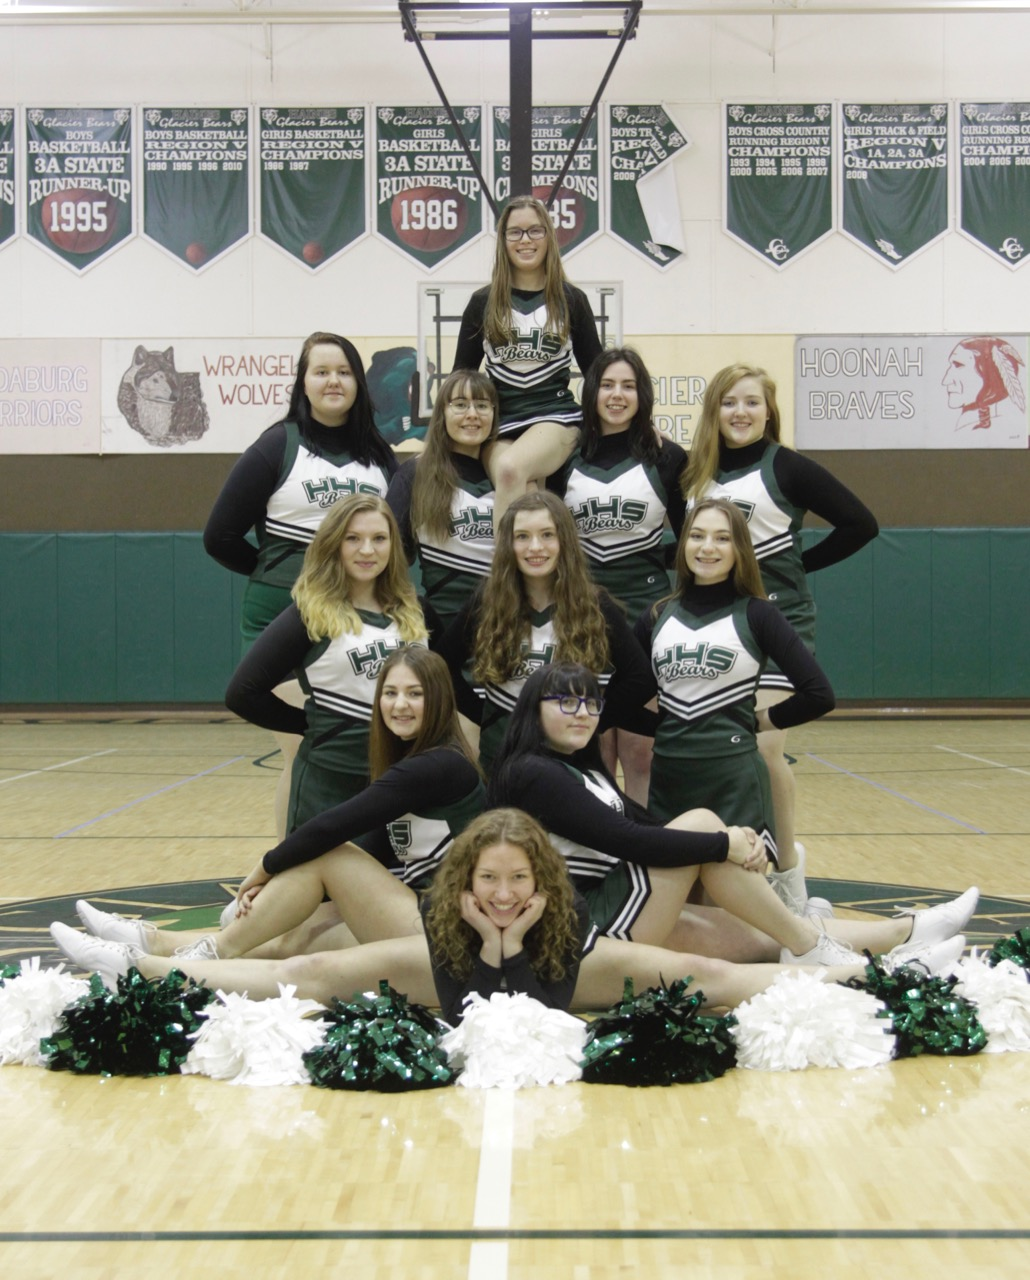 Cheer and Dance Team